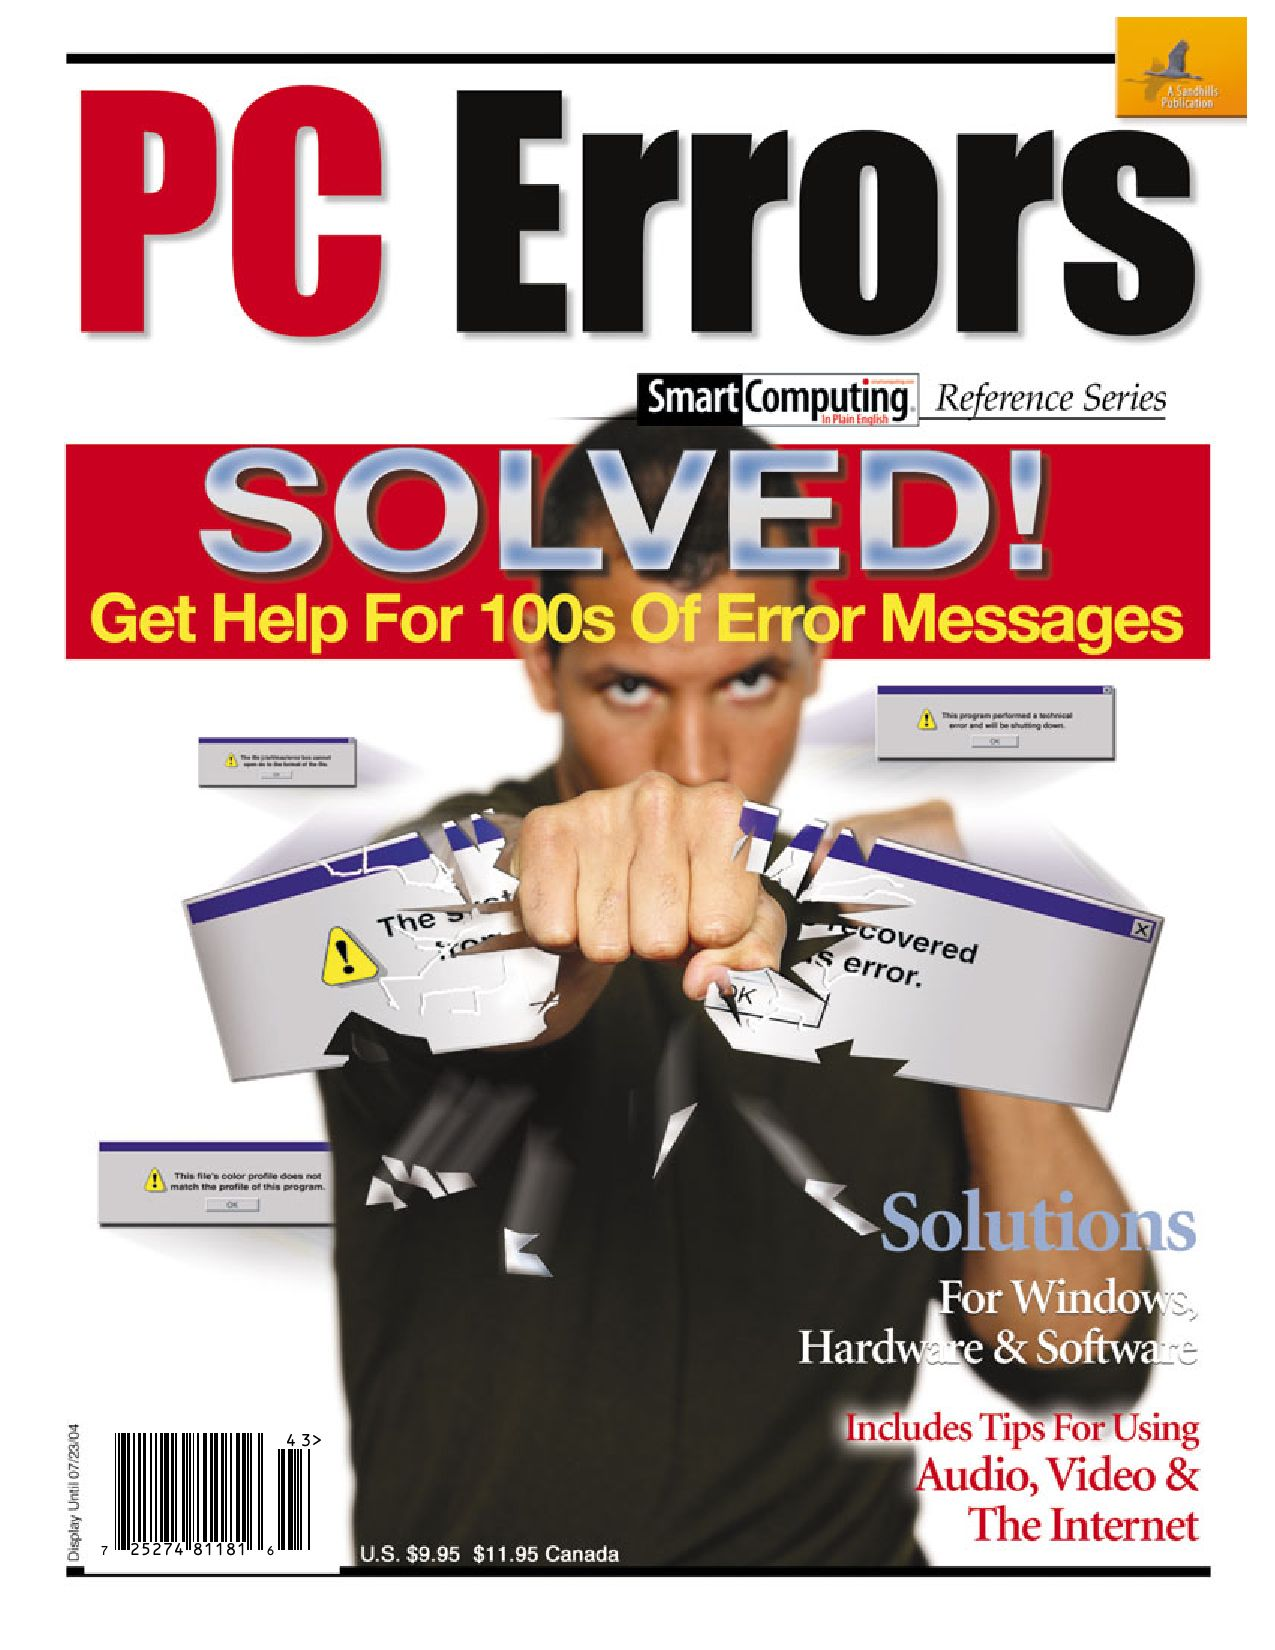 PC error Solved by Florence Prudhommeaux - issuu